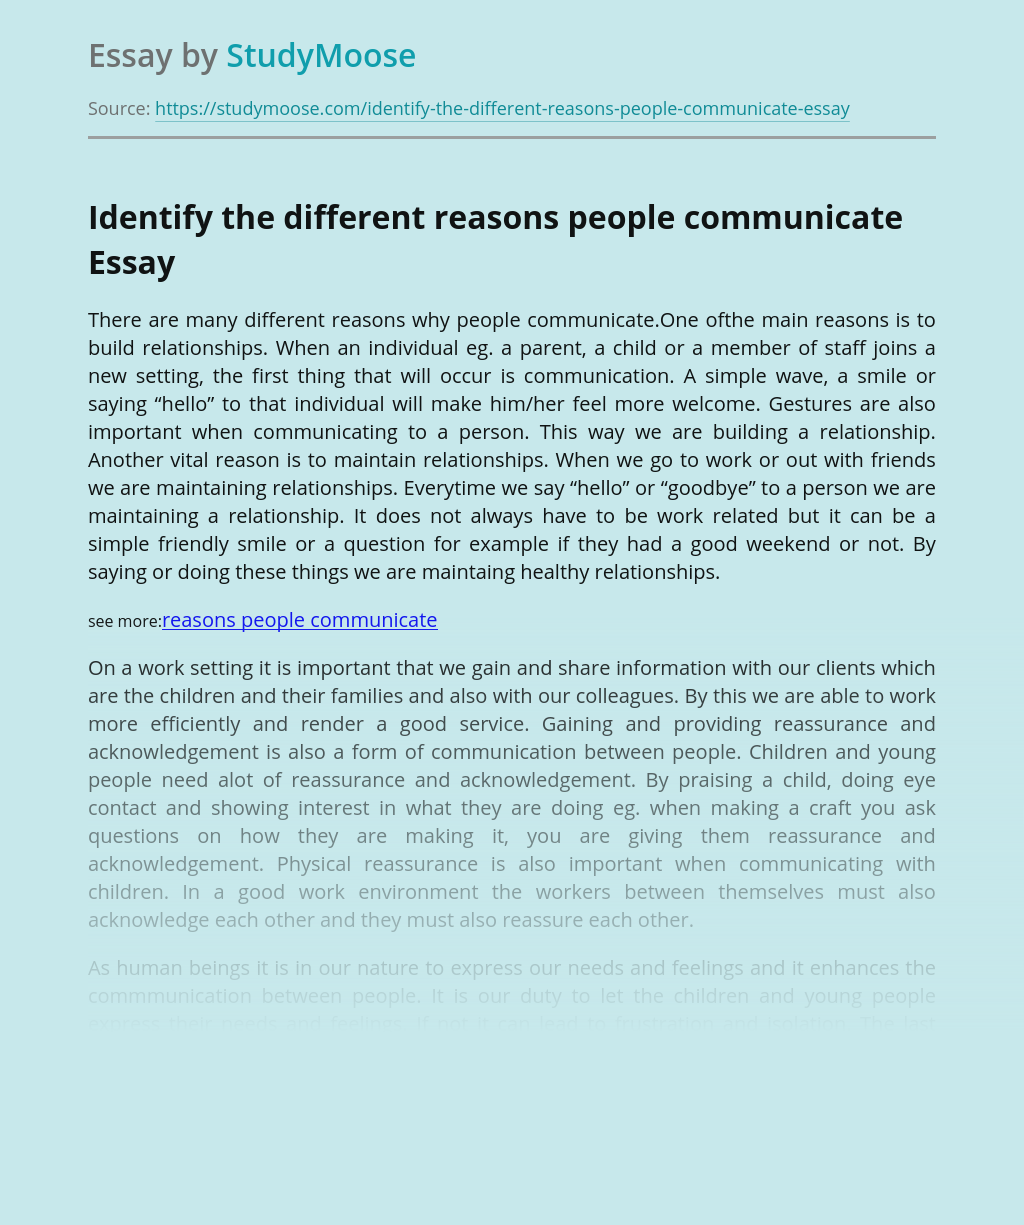 Identify the different reasons people communicate